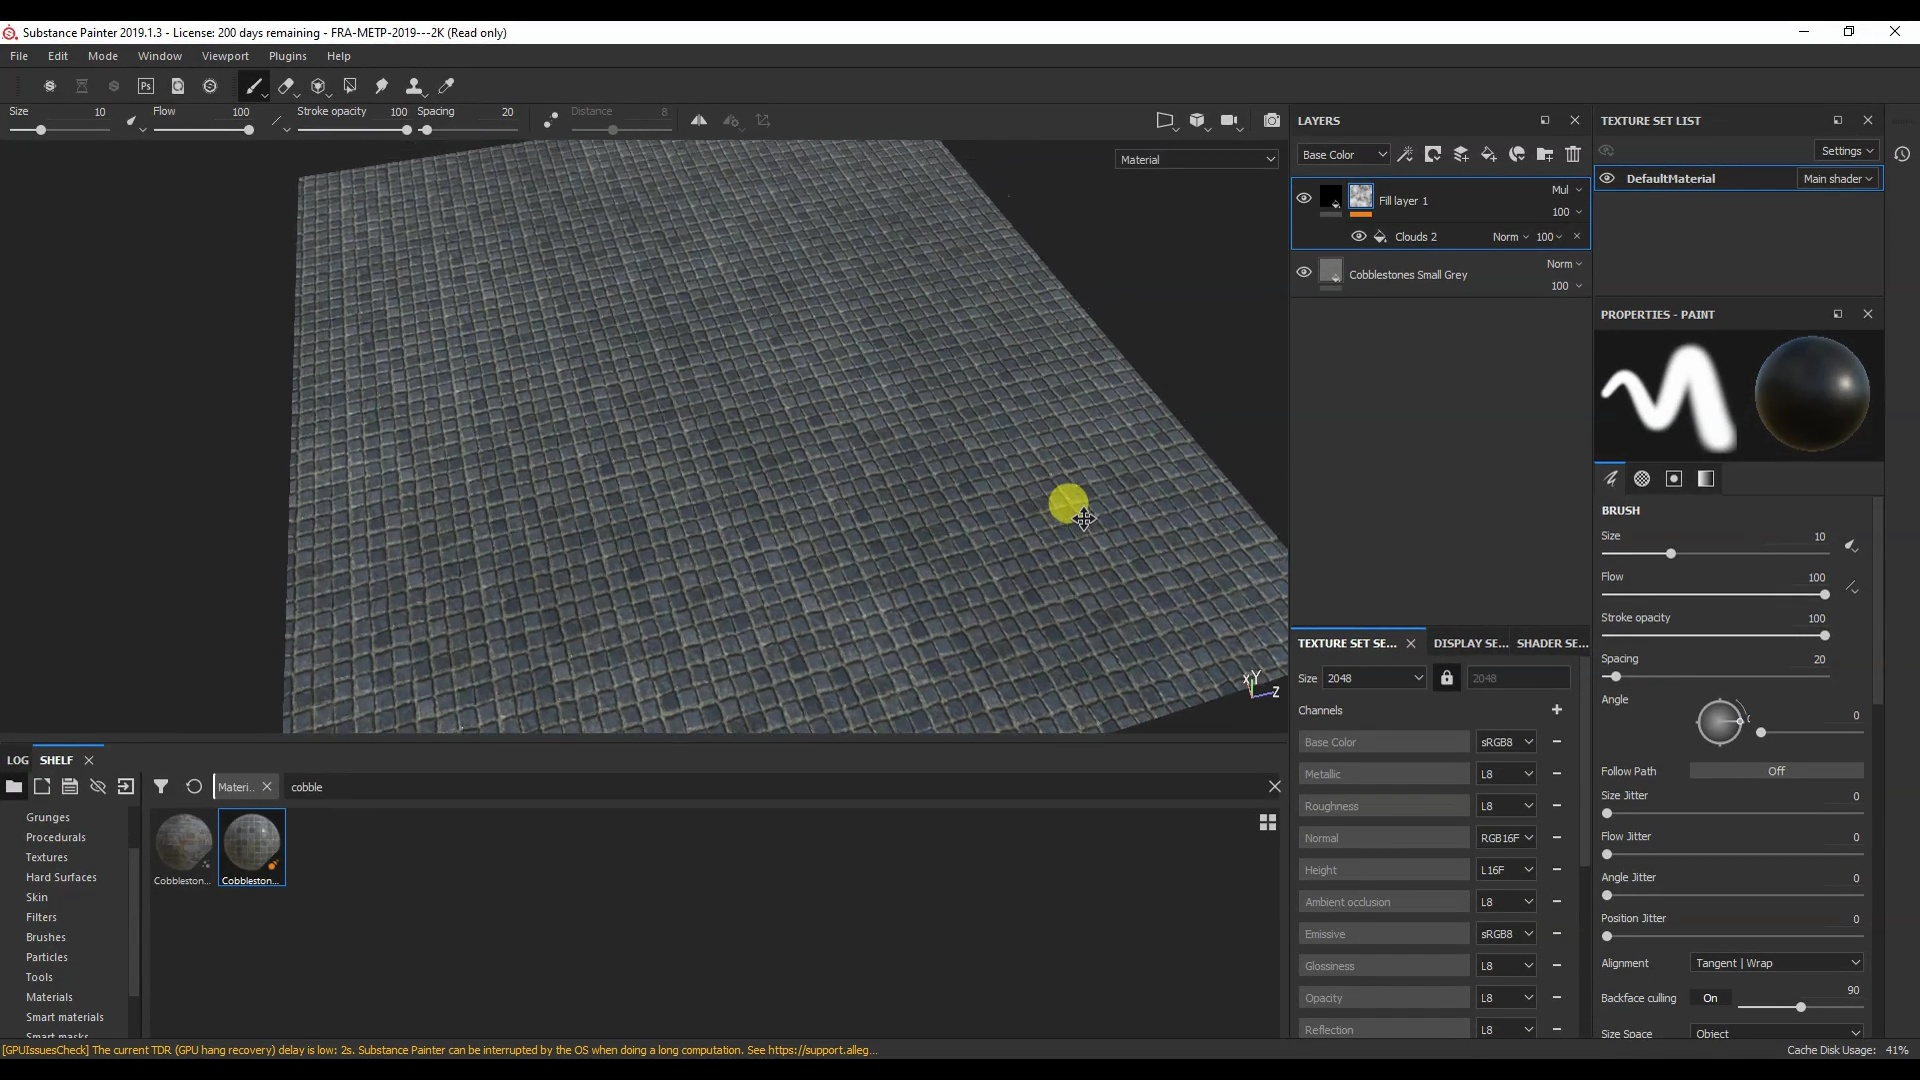 20210327 Substance Painter tutorial Aggiungere un pattern di casualita a Materiali ripetuti 04